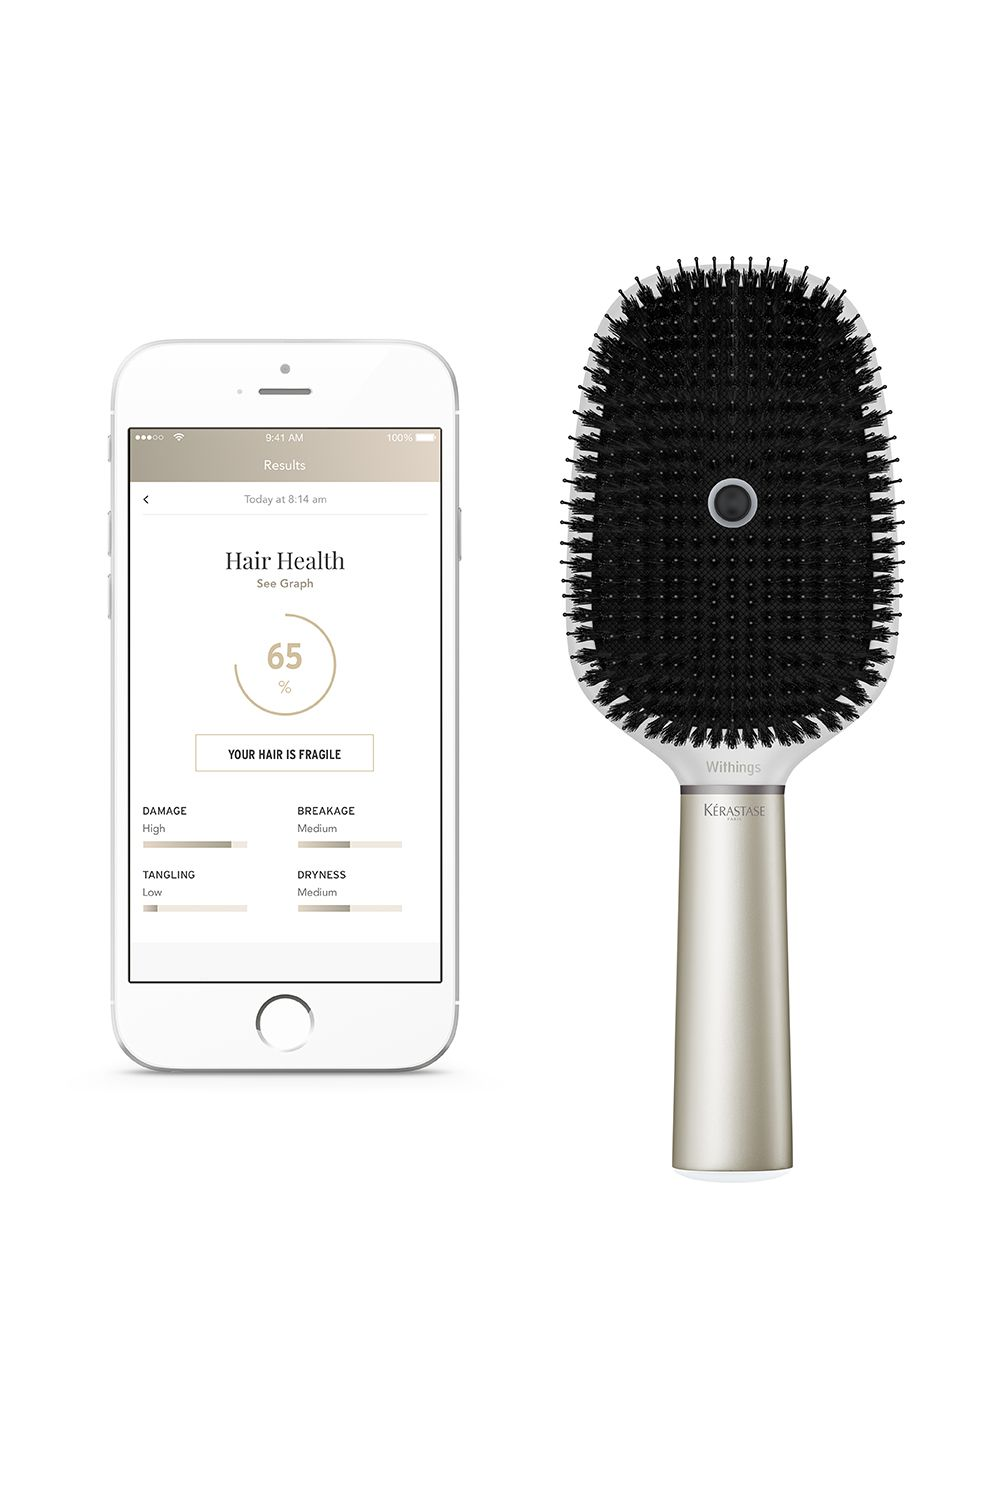 "<p><a href=""http://www.marieclaire.com/beauty/news/a24568/loreal-smart-brush/"" target=""_blank"" data-tracking-id=""recirc-text-link"">This brush</a> comes loaded with a microphone, 3-axis load cells, an accelerometer, a gyroscope, and conductivity sensors. Why? Because it's about time our hairbrushes do more than just, you know, brush. This one will give you insight into your strands' quality and brushing habits while recommending tips and products that'll up your hair game. Yep. That's one smart brush. </p><p>Under $200, coming soon to <a href=""http://www.kerastase-usa.com/"" data-tracking-id=""recirc-text-link"">Kérastase</a> <span class=""redactor-invisible-space"" data-verified=""redactor"" data-redactor-tag=""span"" data-redactor-class=""redactor-invisible-space"">and <a href=""http://www.withings.com/us/en/"" data-tracking-id=""recirc-text-link"">Withings</a></span></p>"